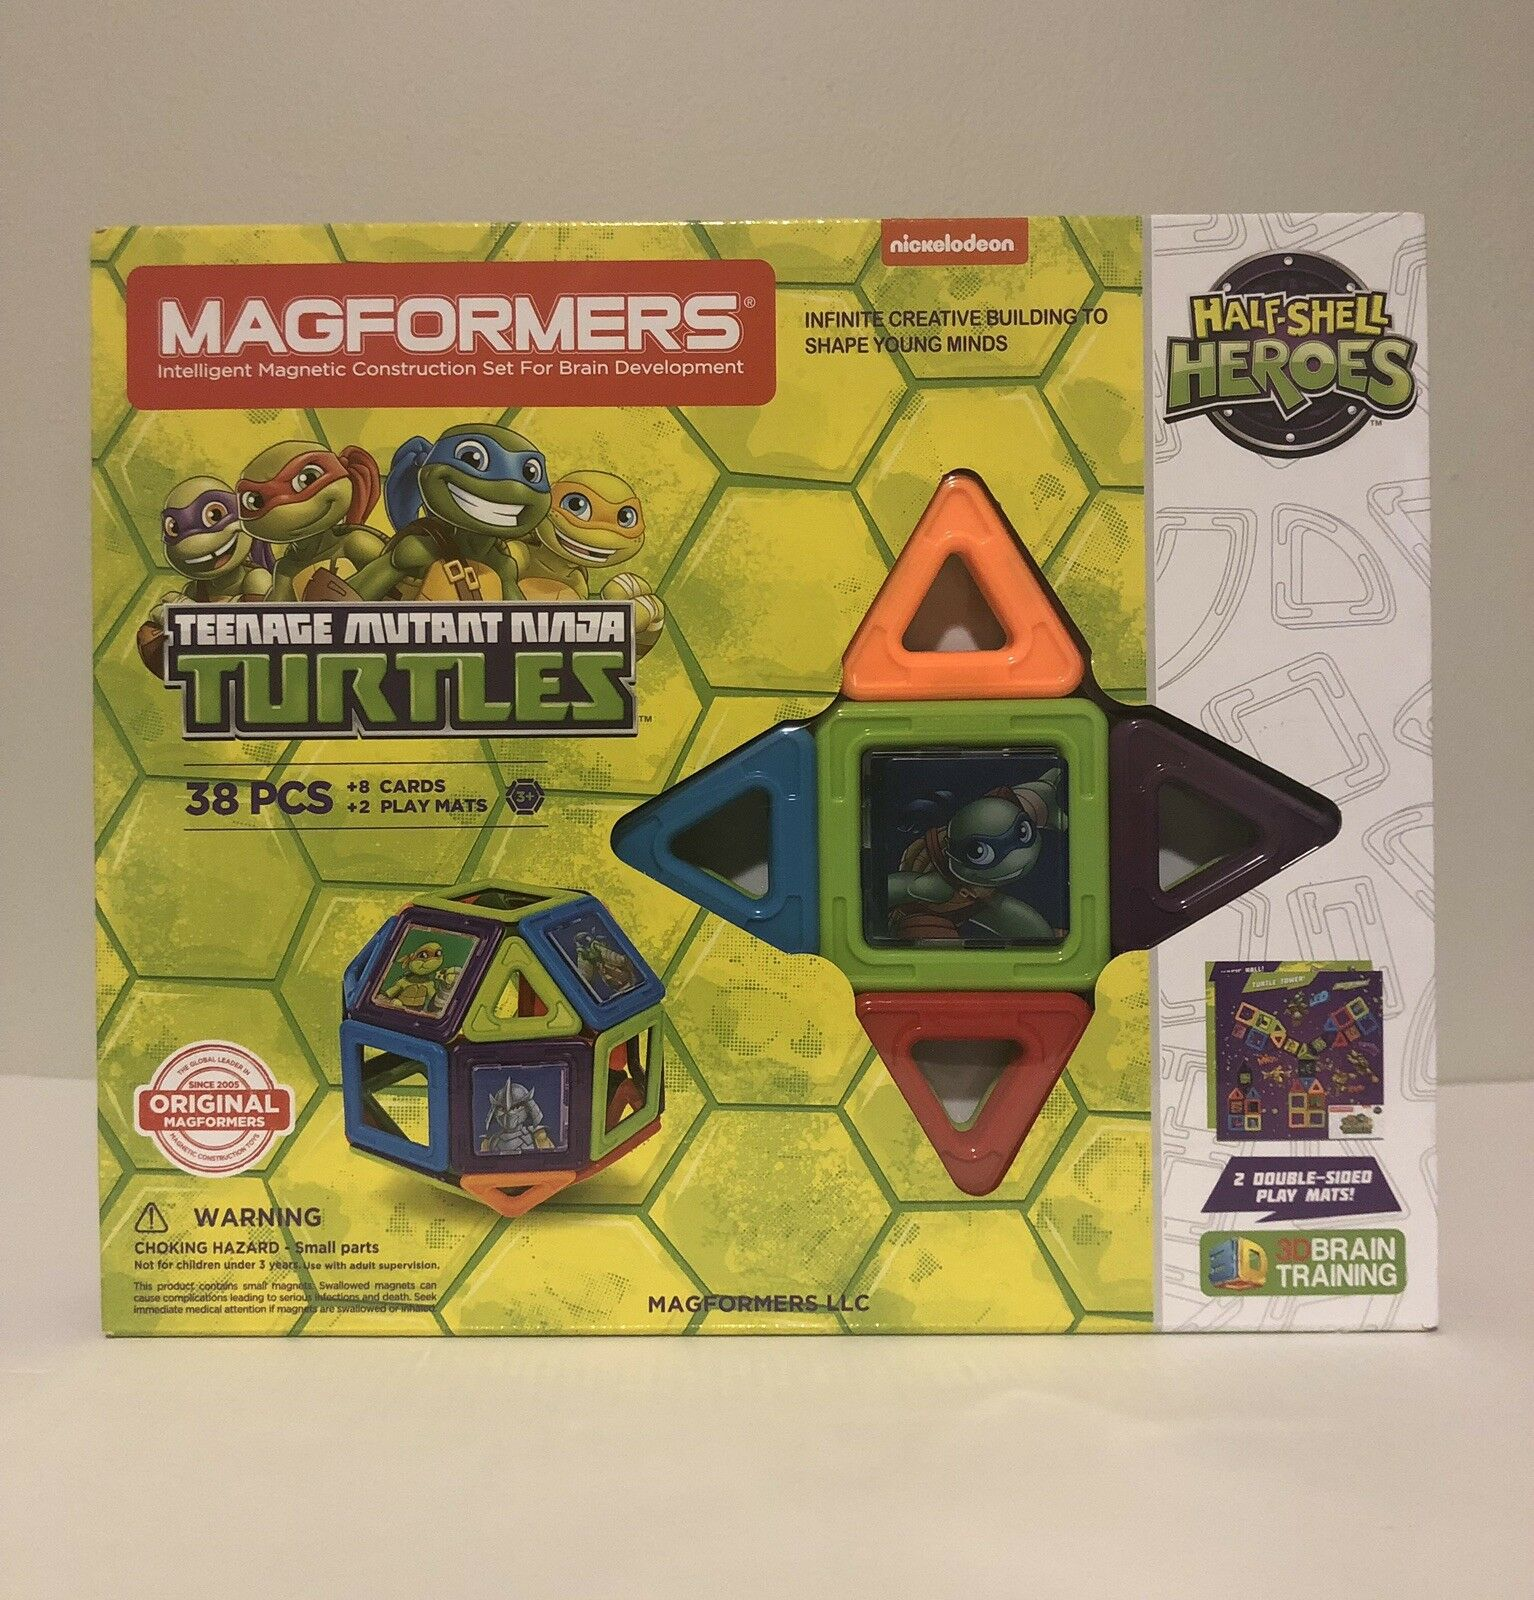 Magformers Teenage Mutant Ninja Turtles Half Shell Heroes, 38 Piece Set